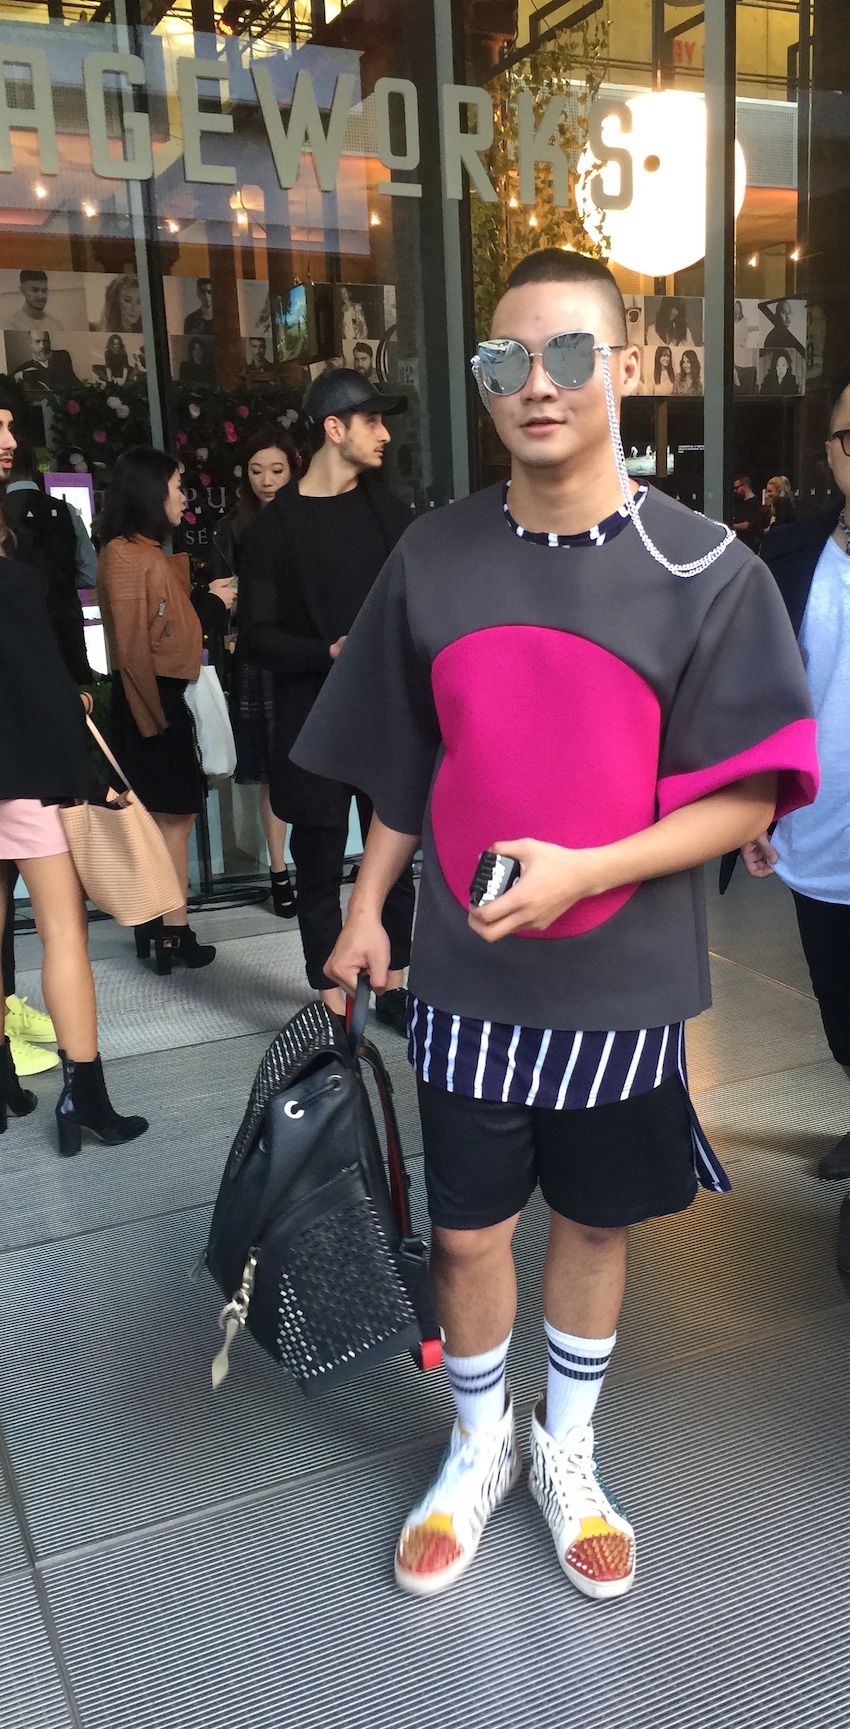 NSW: We spotted this rad guy at Fashion Week. Sorry we missed getting your name.